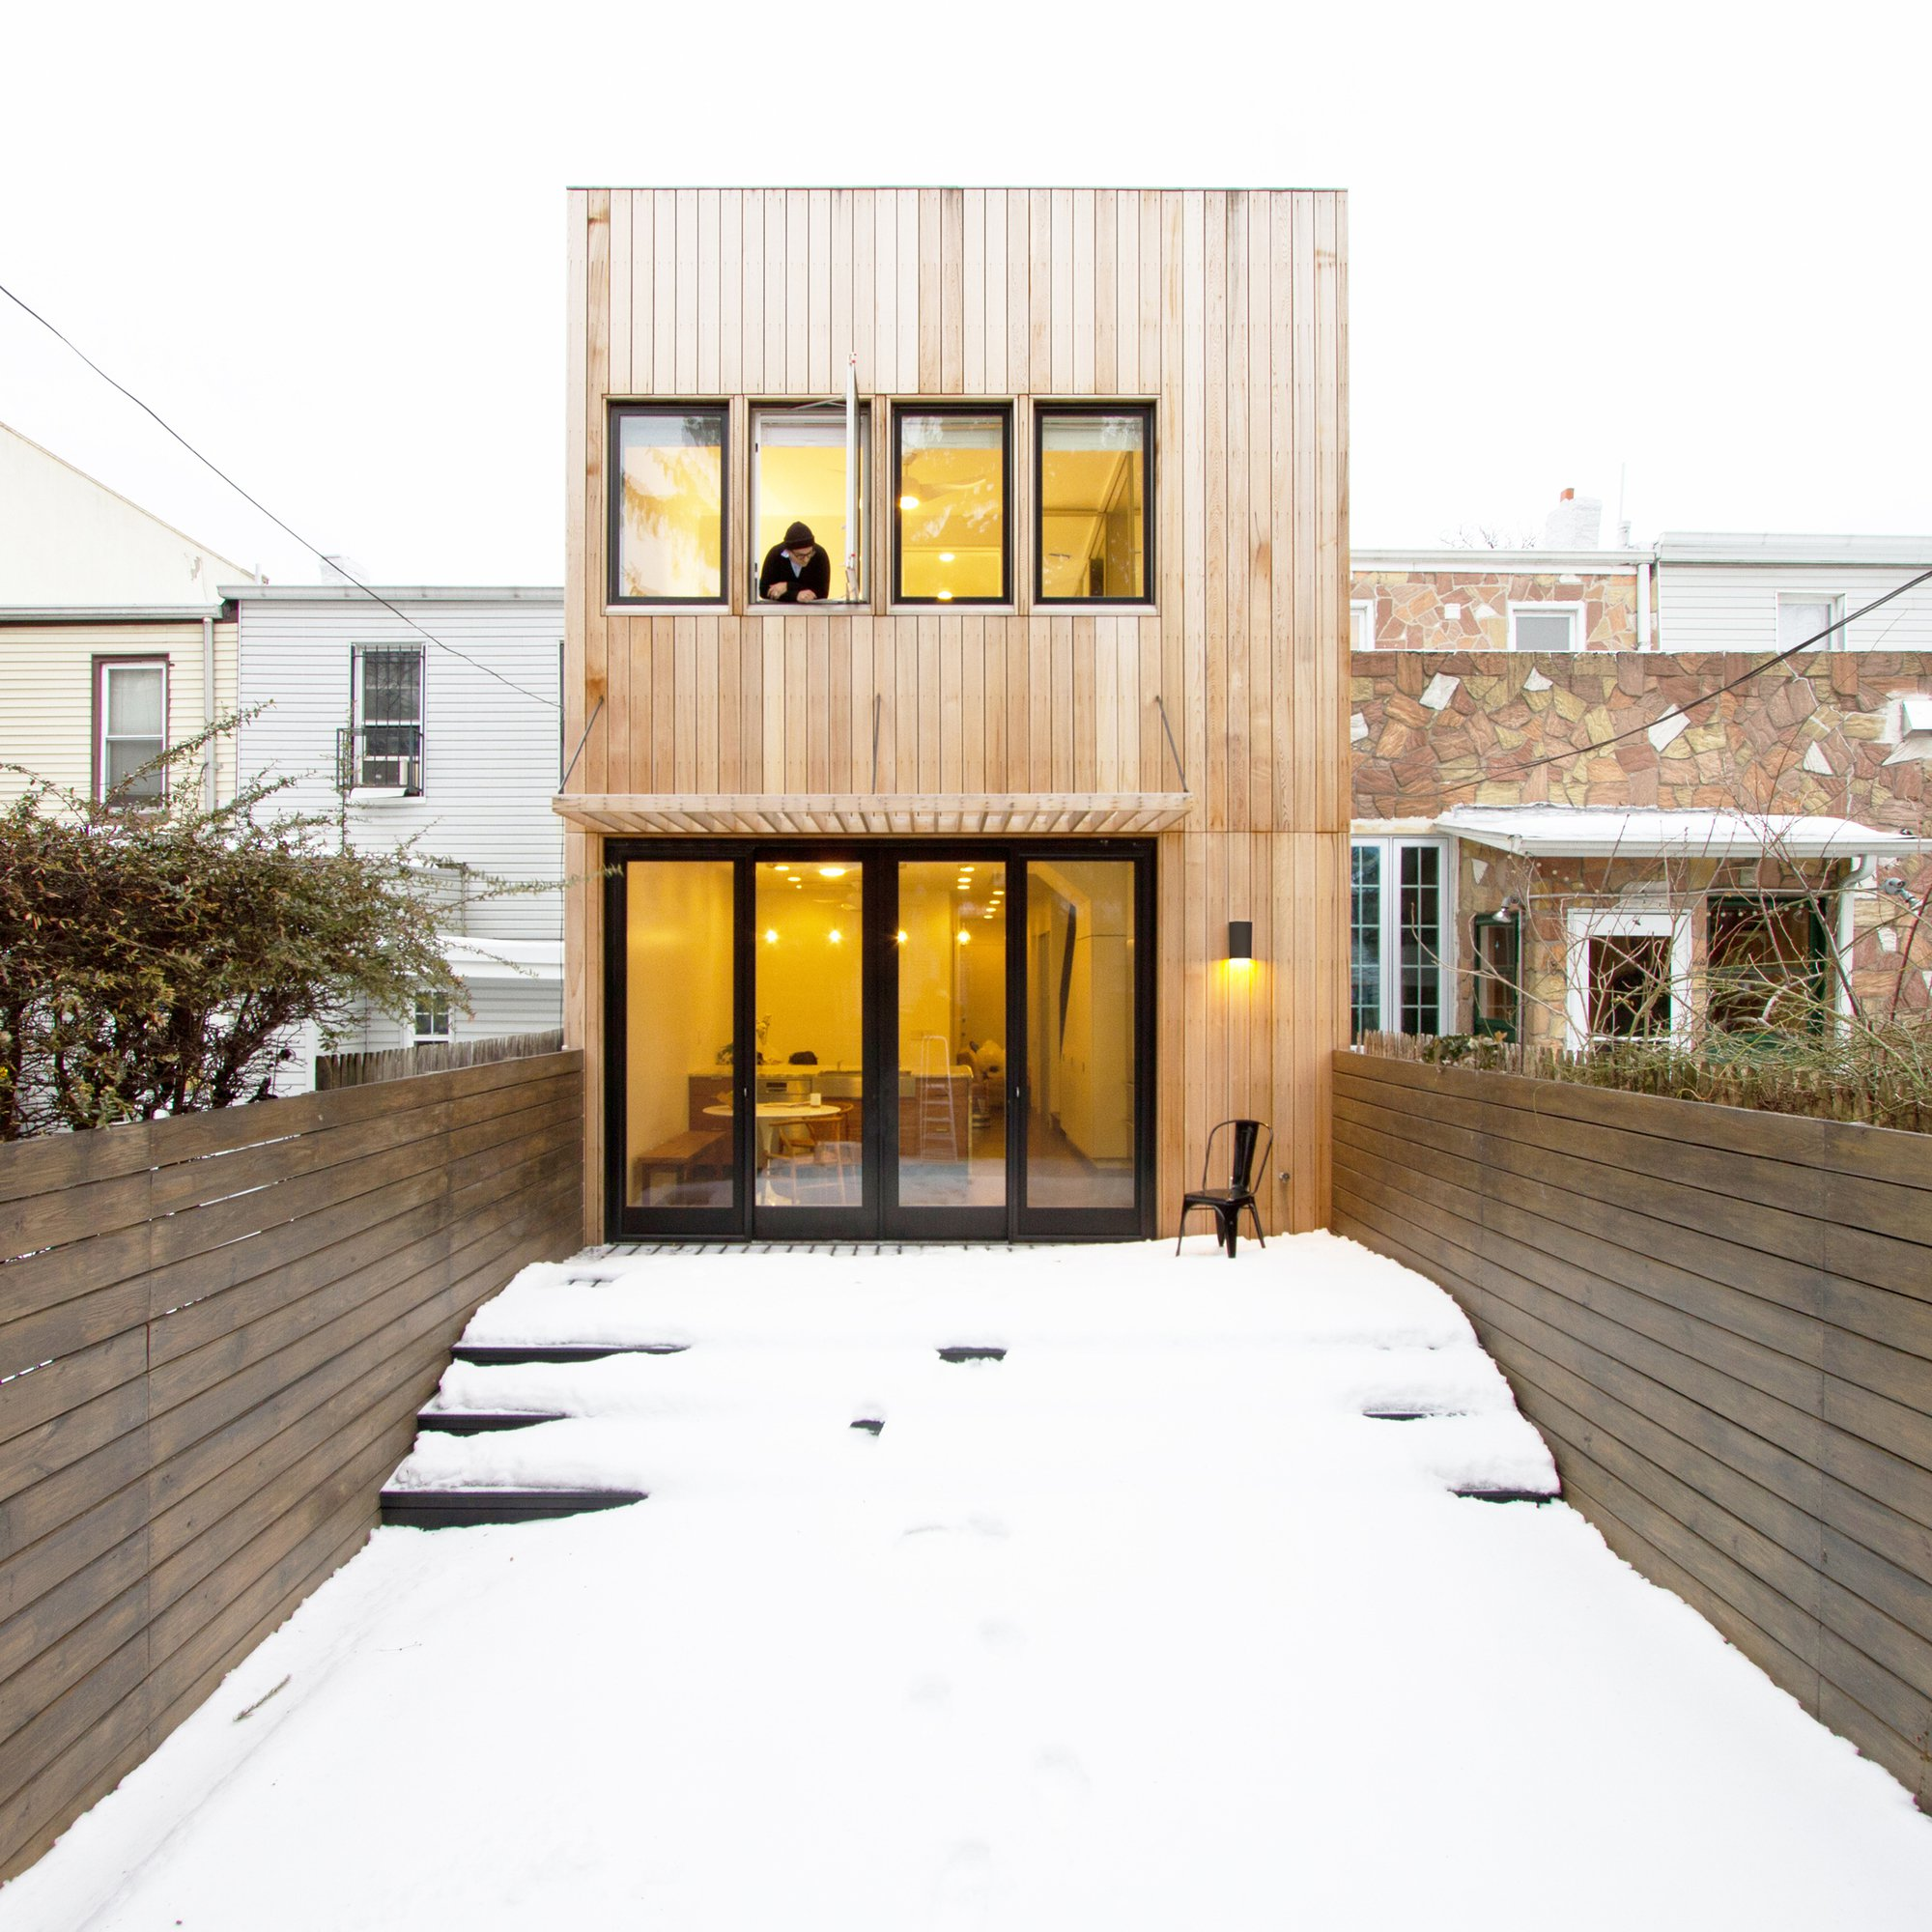 54f79708e58ecee84d0001c6_brooklyn-row-house-office-of-architecture_portada_03_after_facade